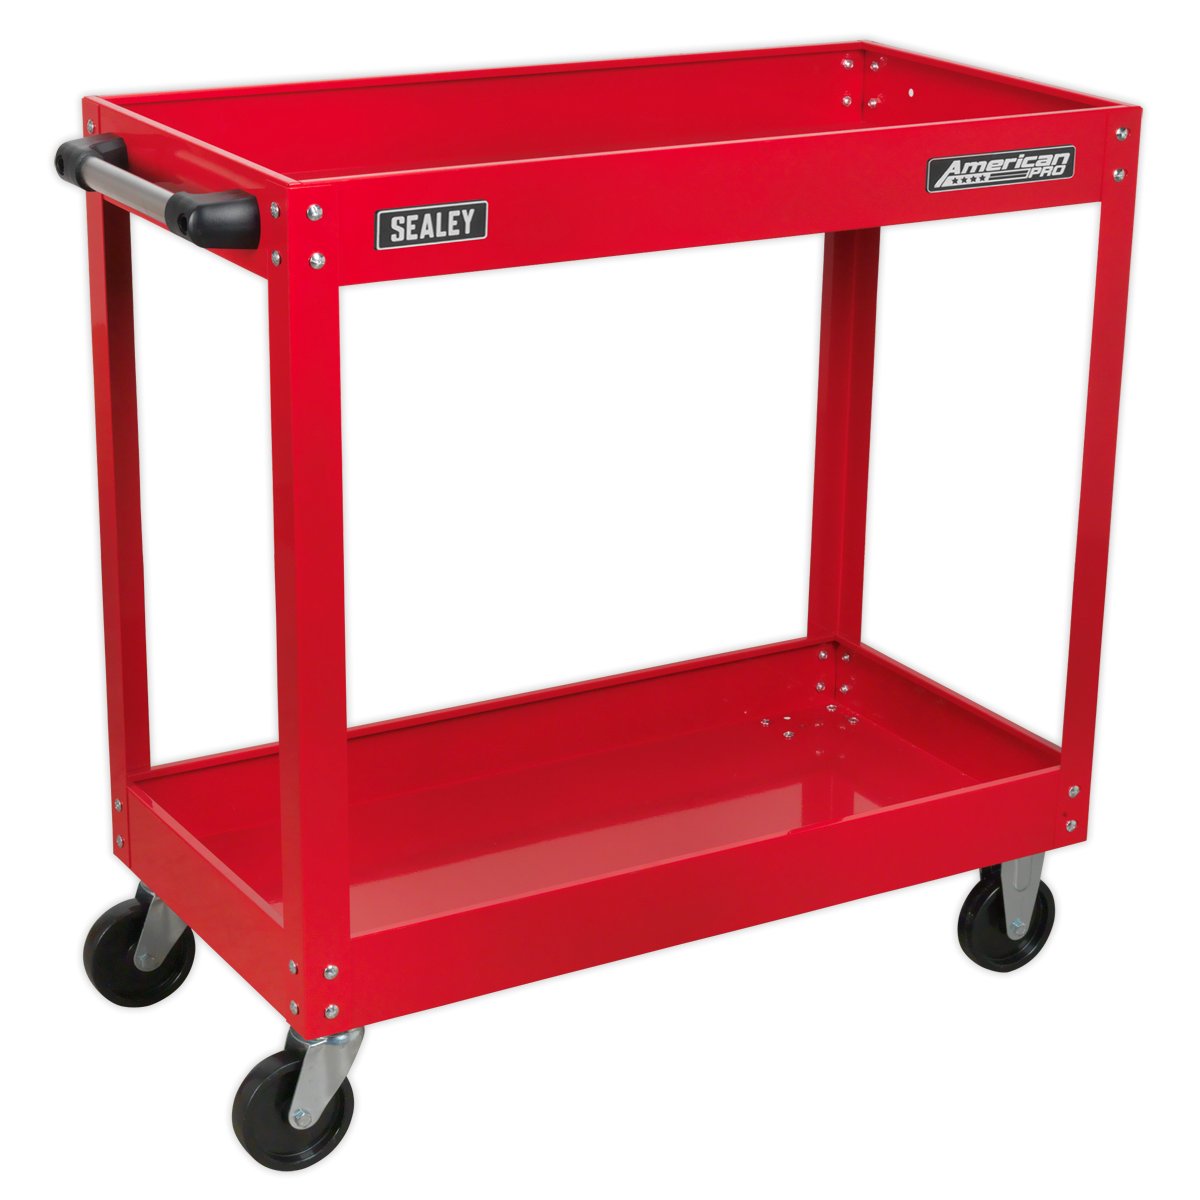 SEALEY Workshop Trolley 2 Level Heavy Duty Red